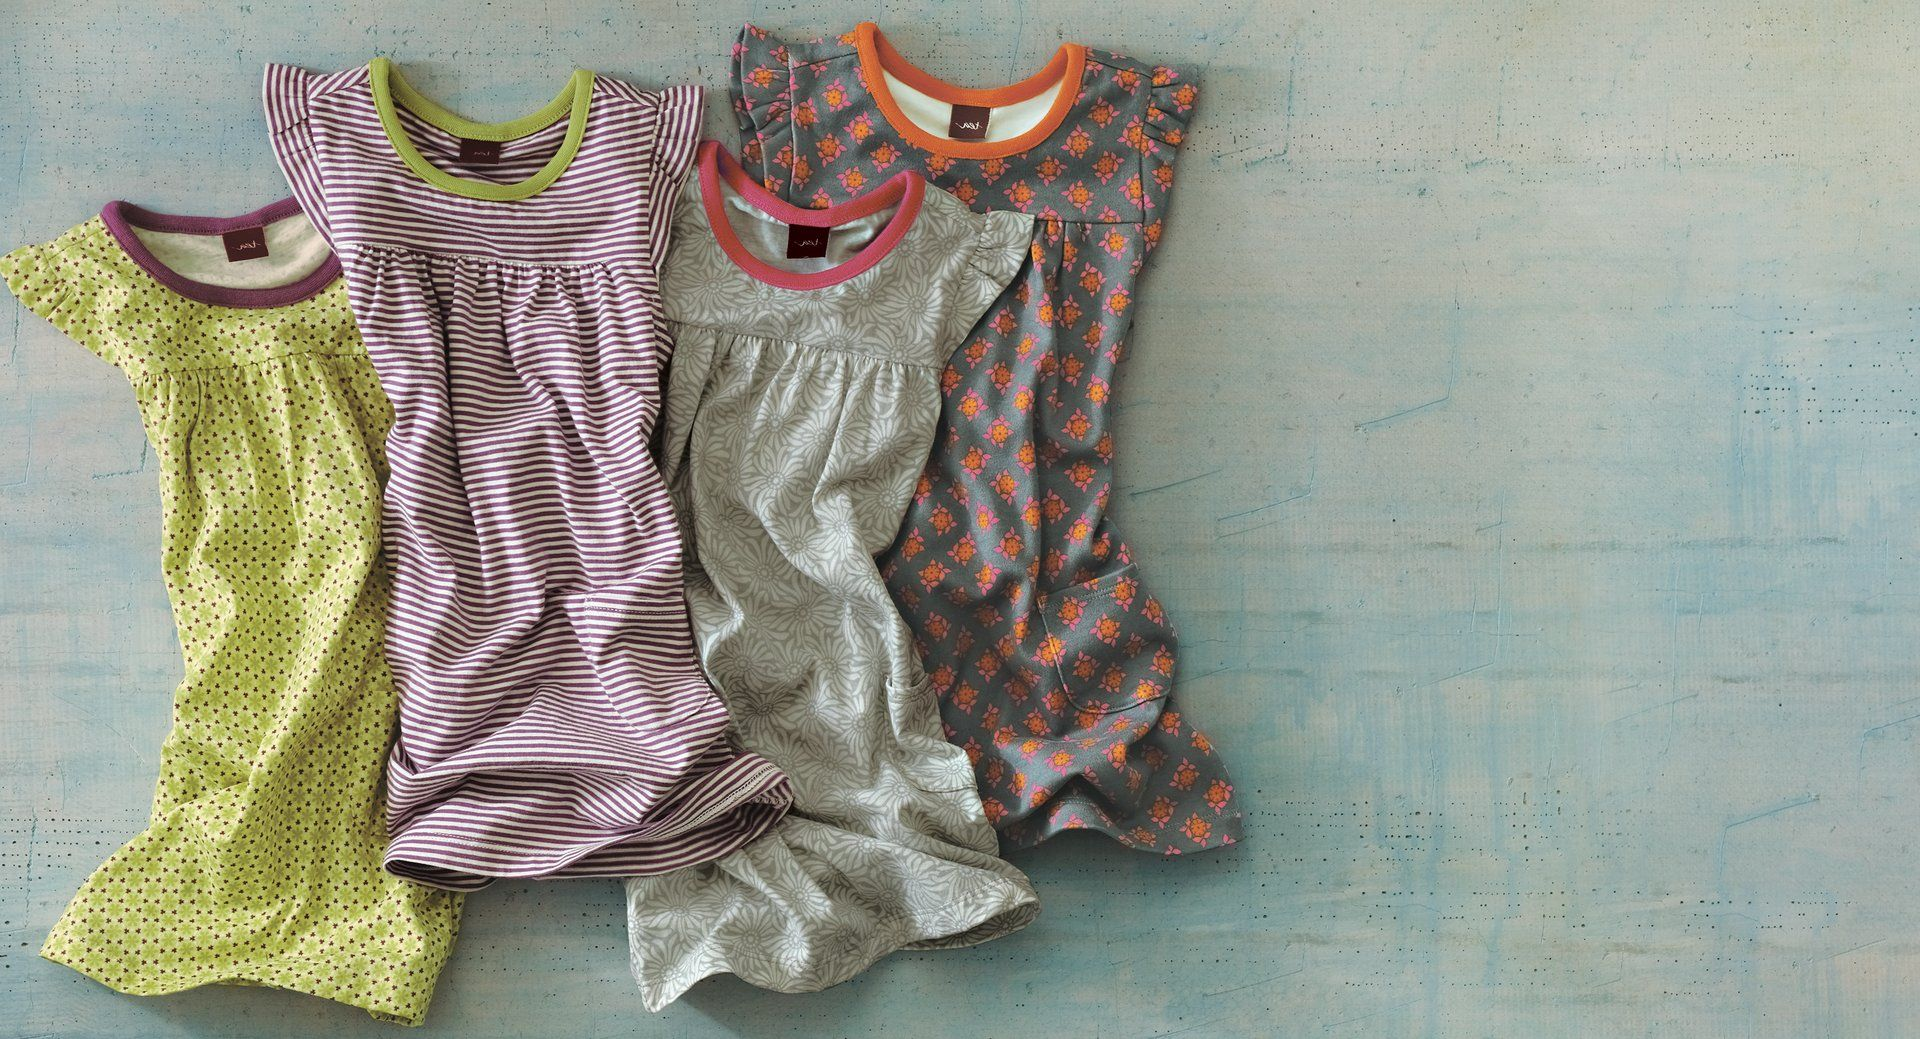 Molly kids clothes.jpg